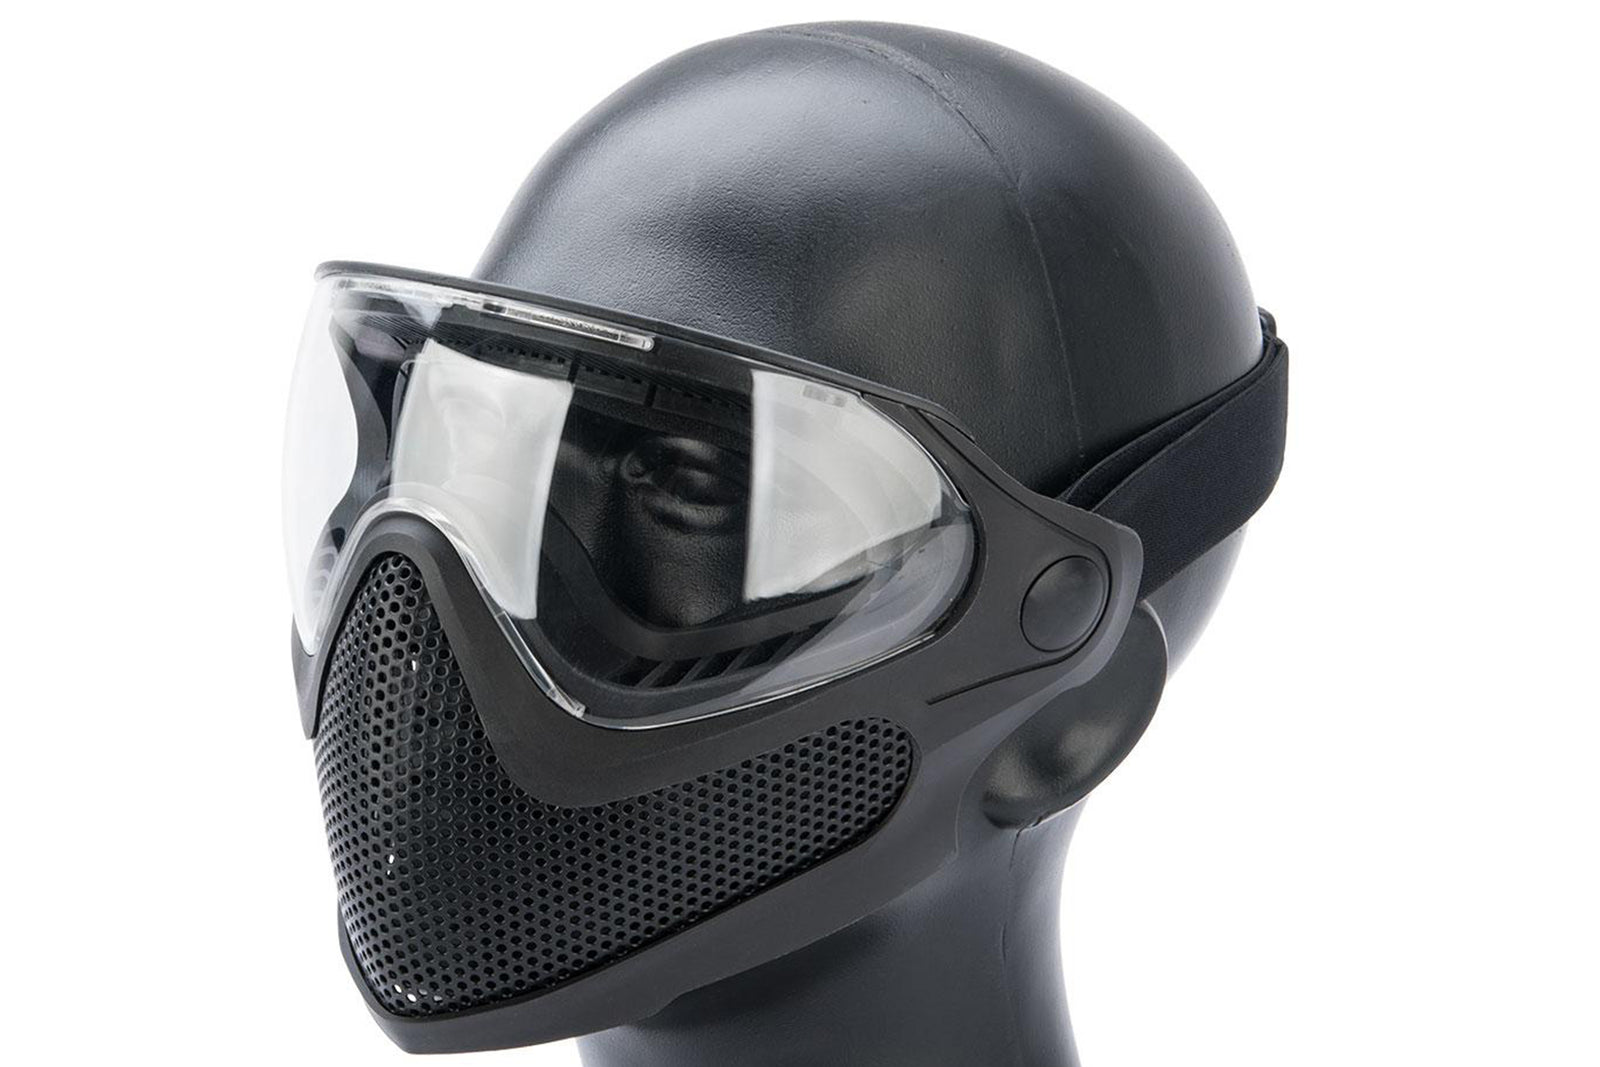 6mmProShop Pilot Face Mask w/ Steel Mesh Lower Face Protection - Black